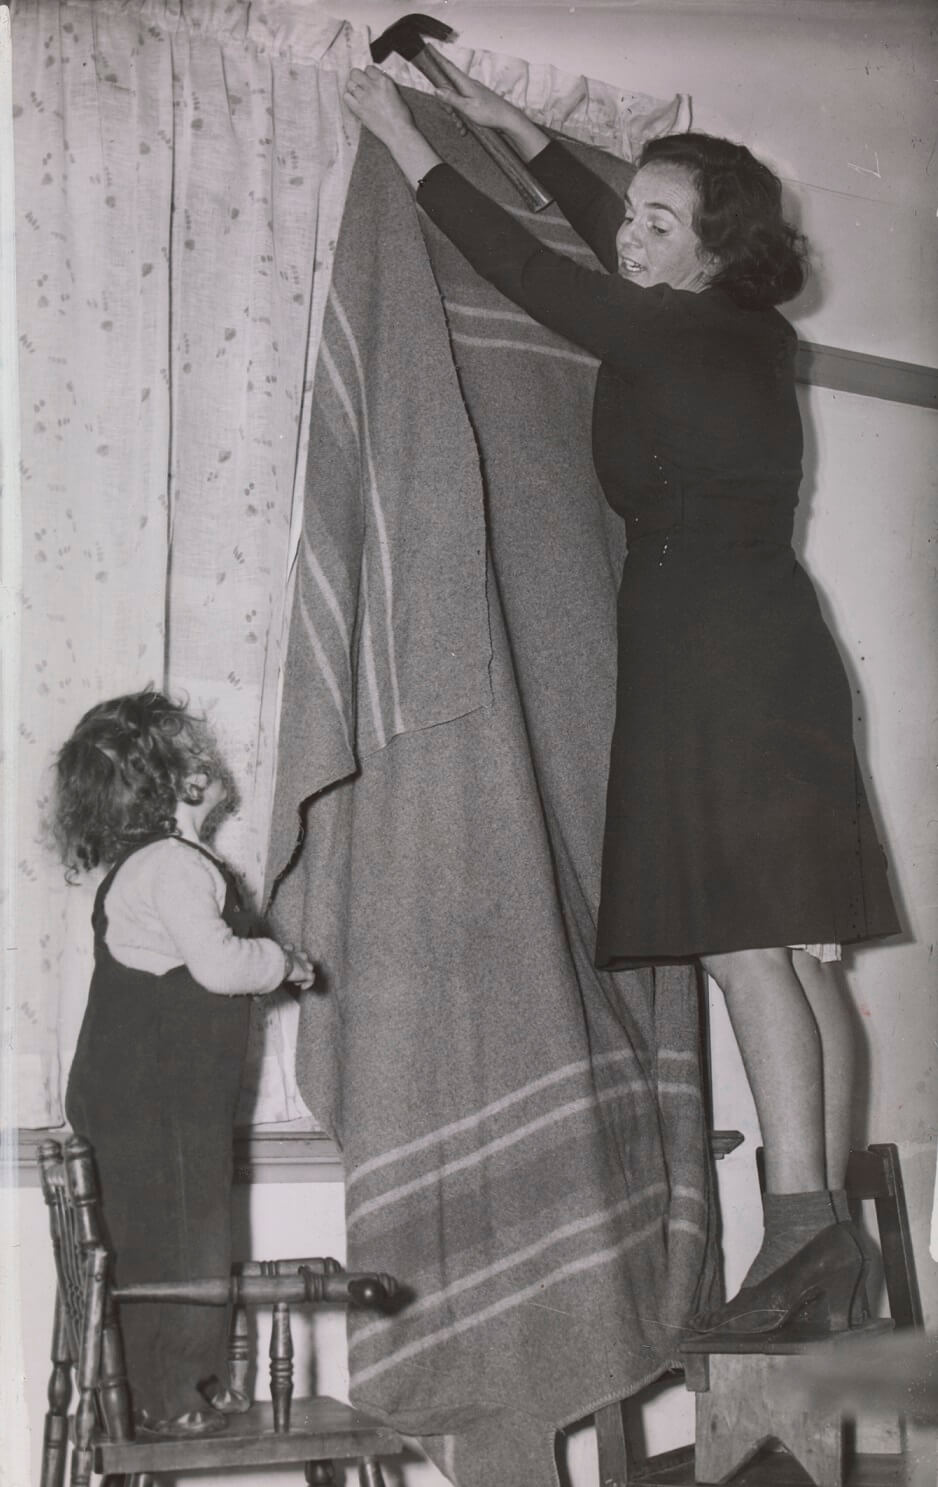 hammering up the black out curtain